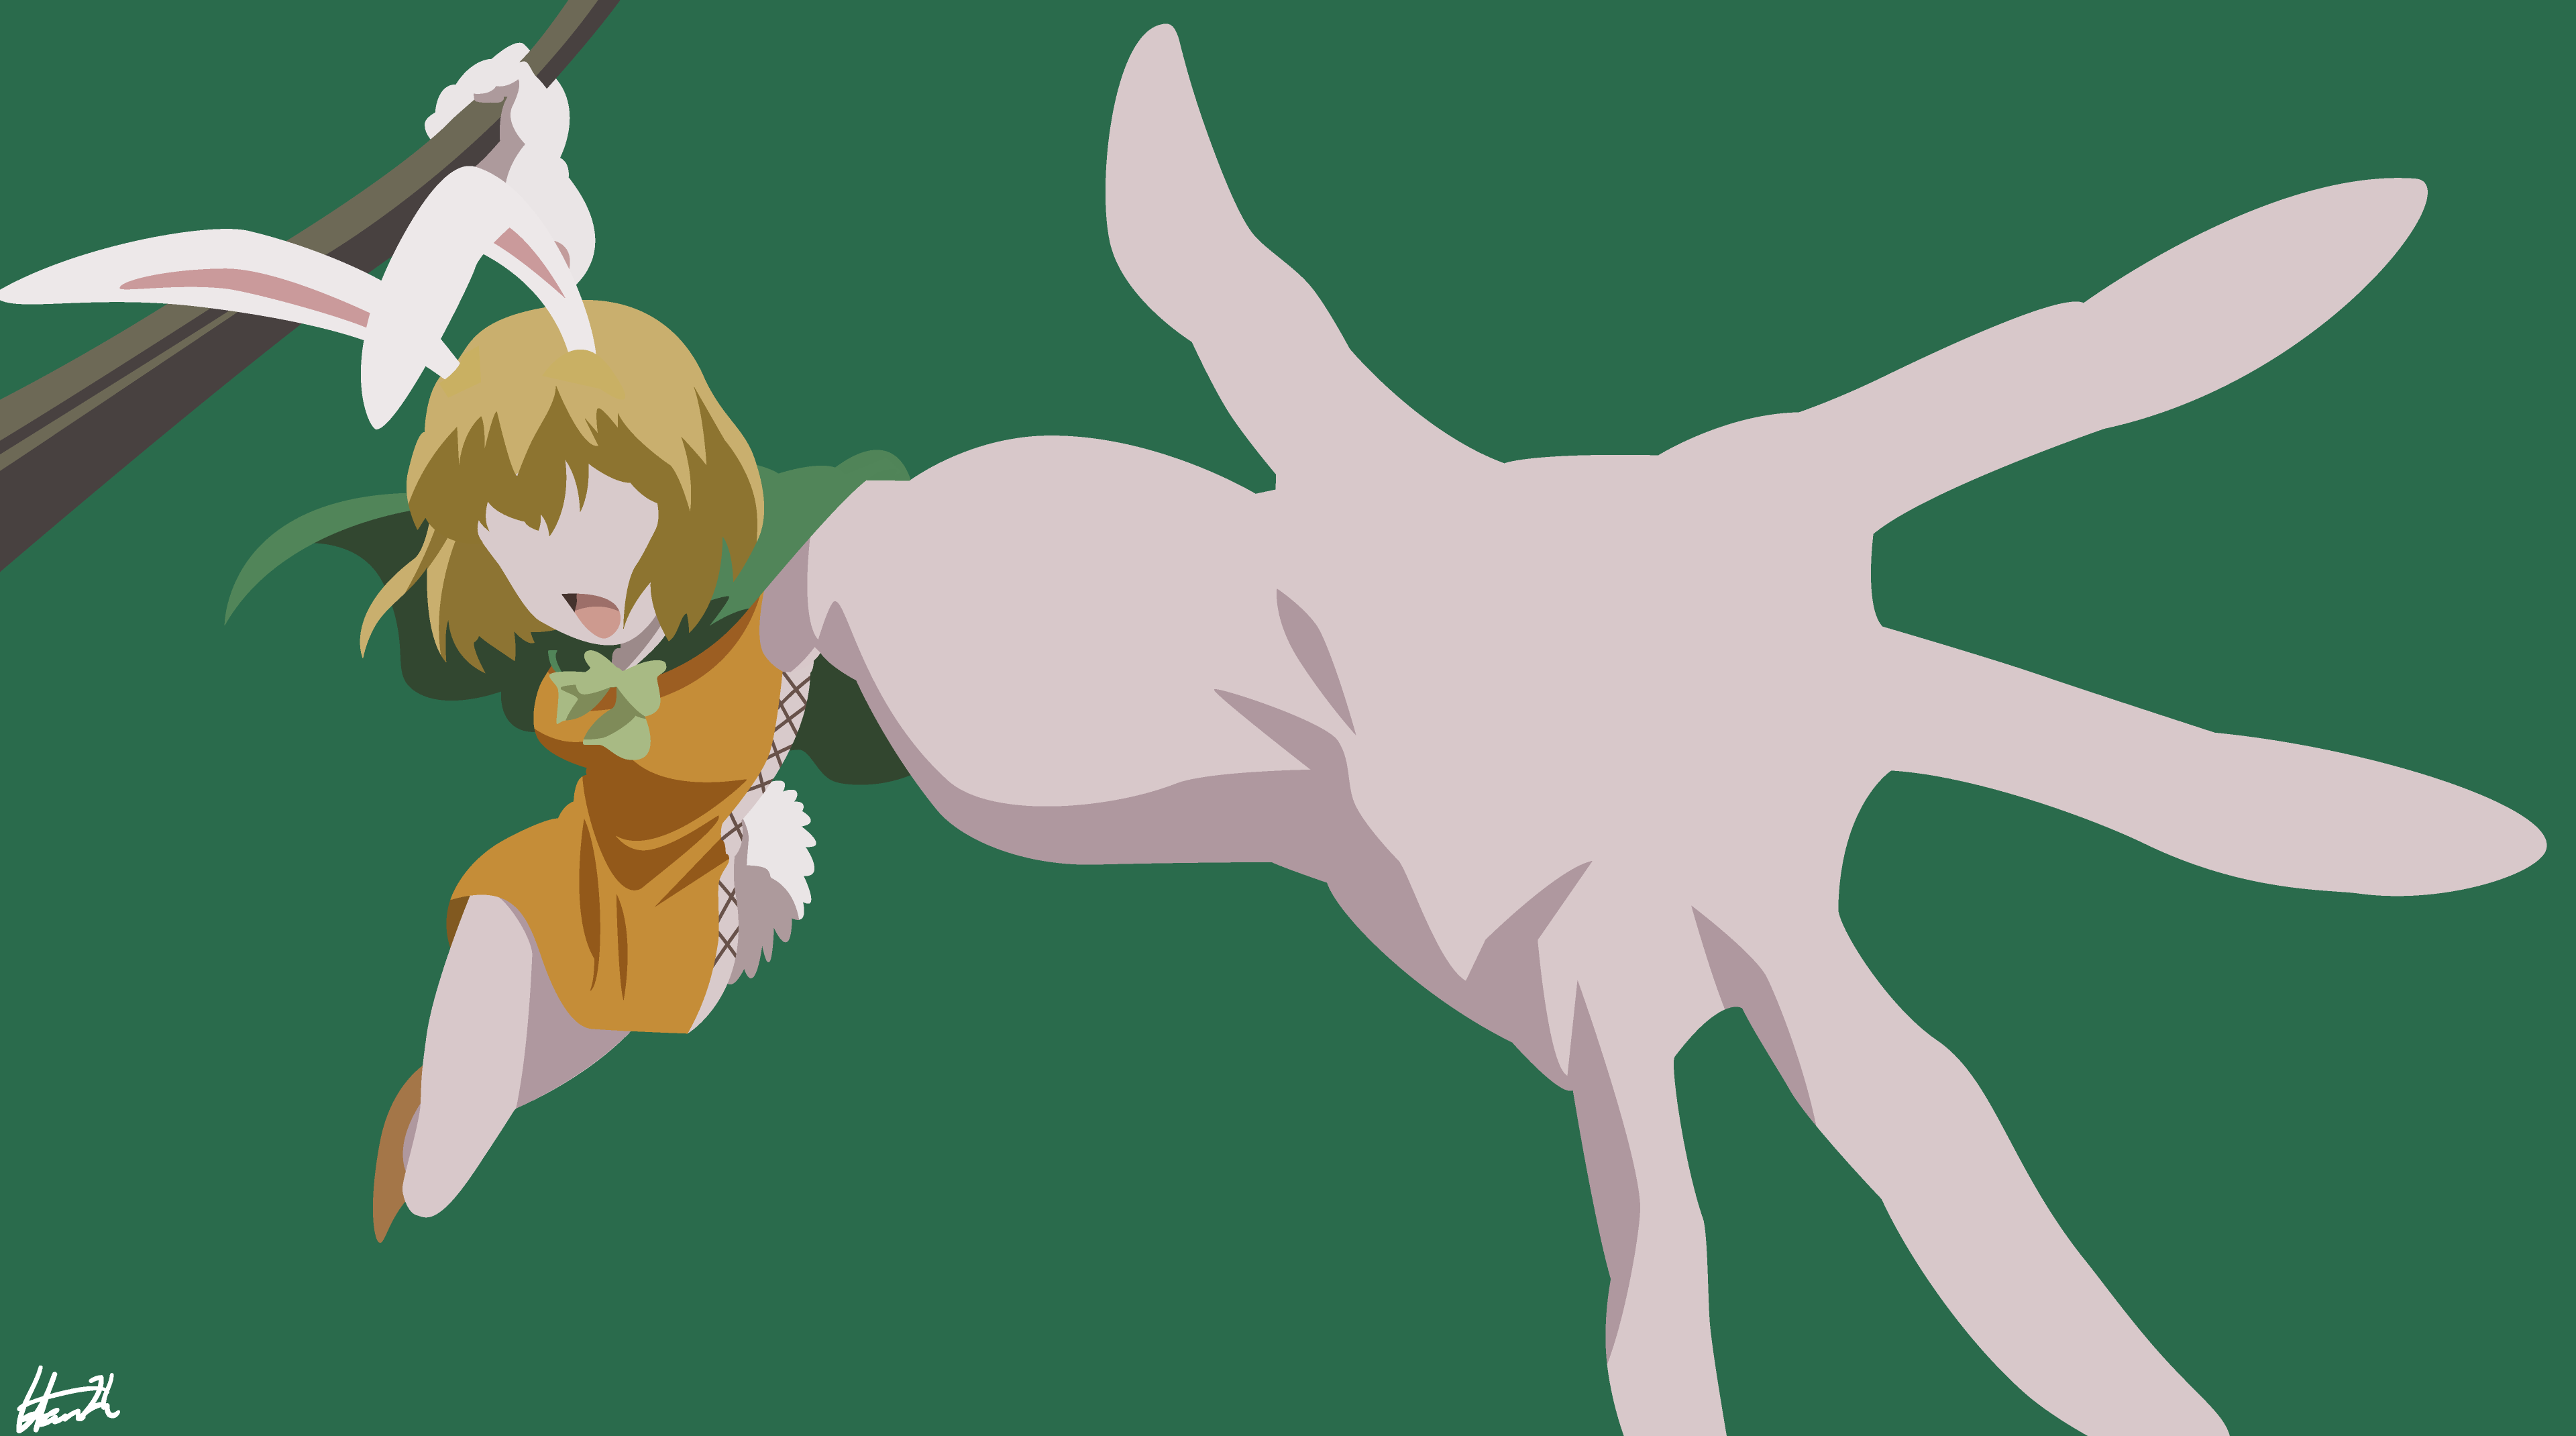 Carrot One Piece Minimalist Wallpaper By Hanszh On Deviantart